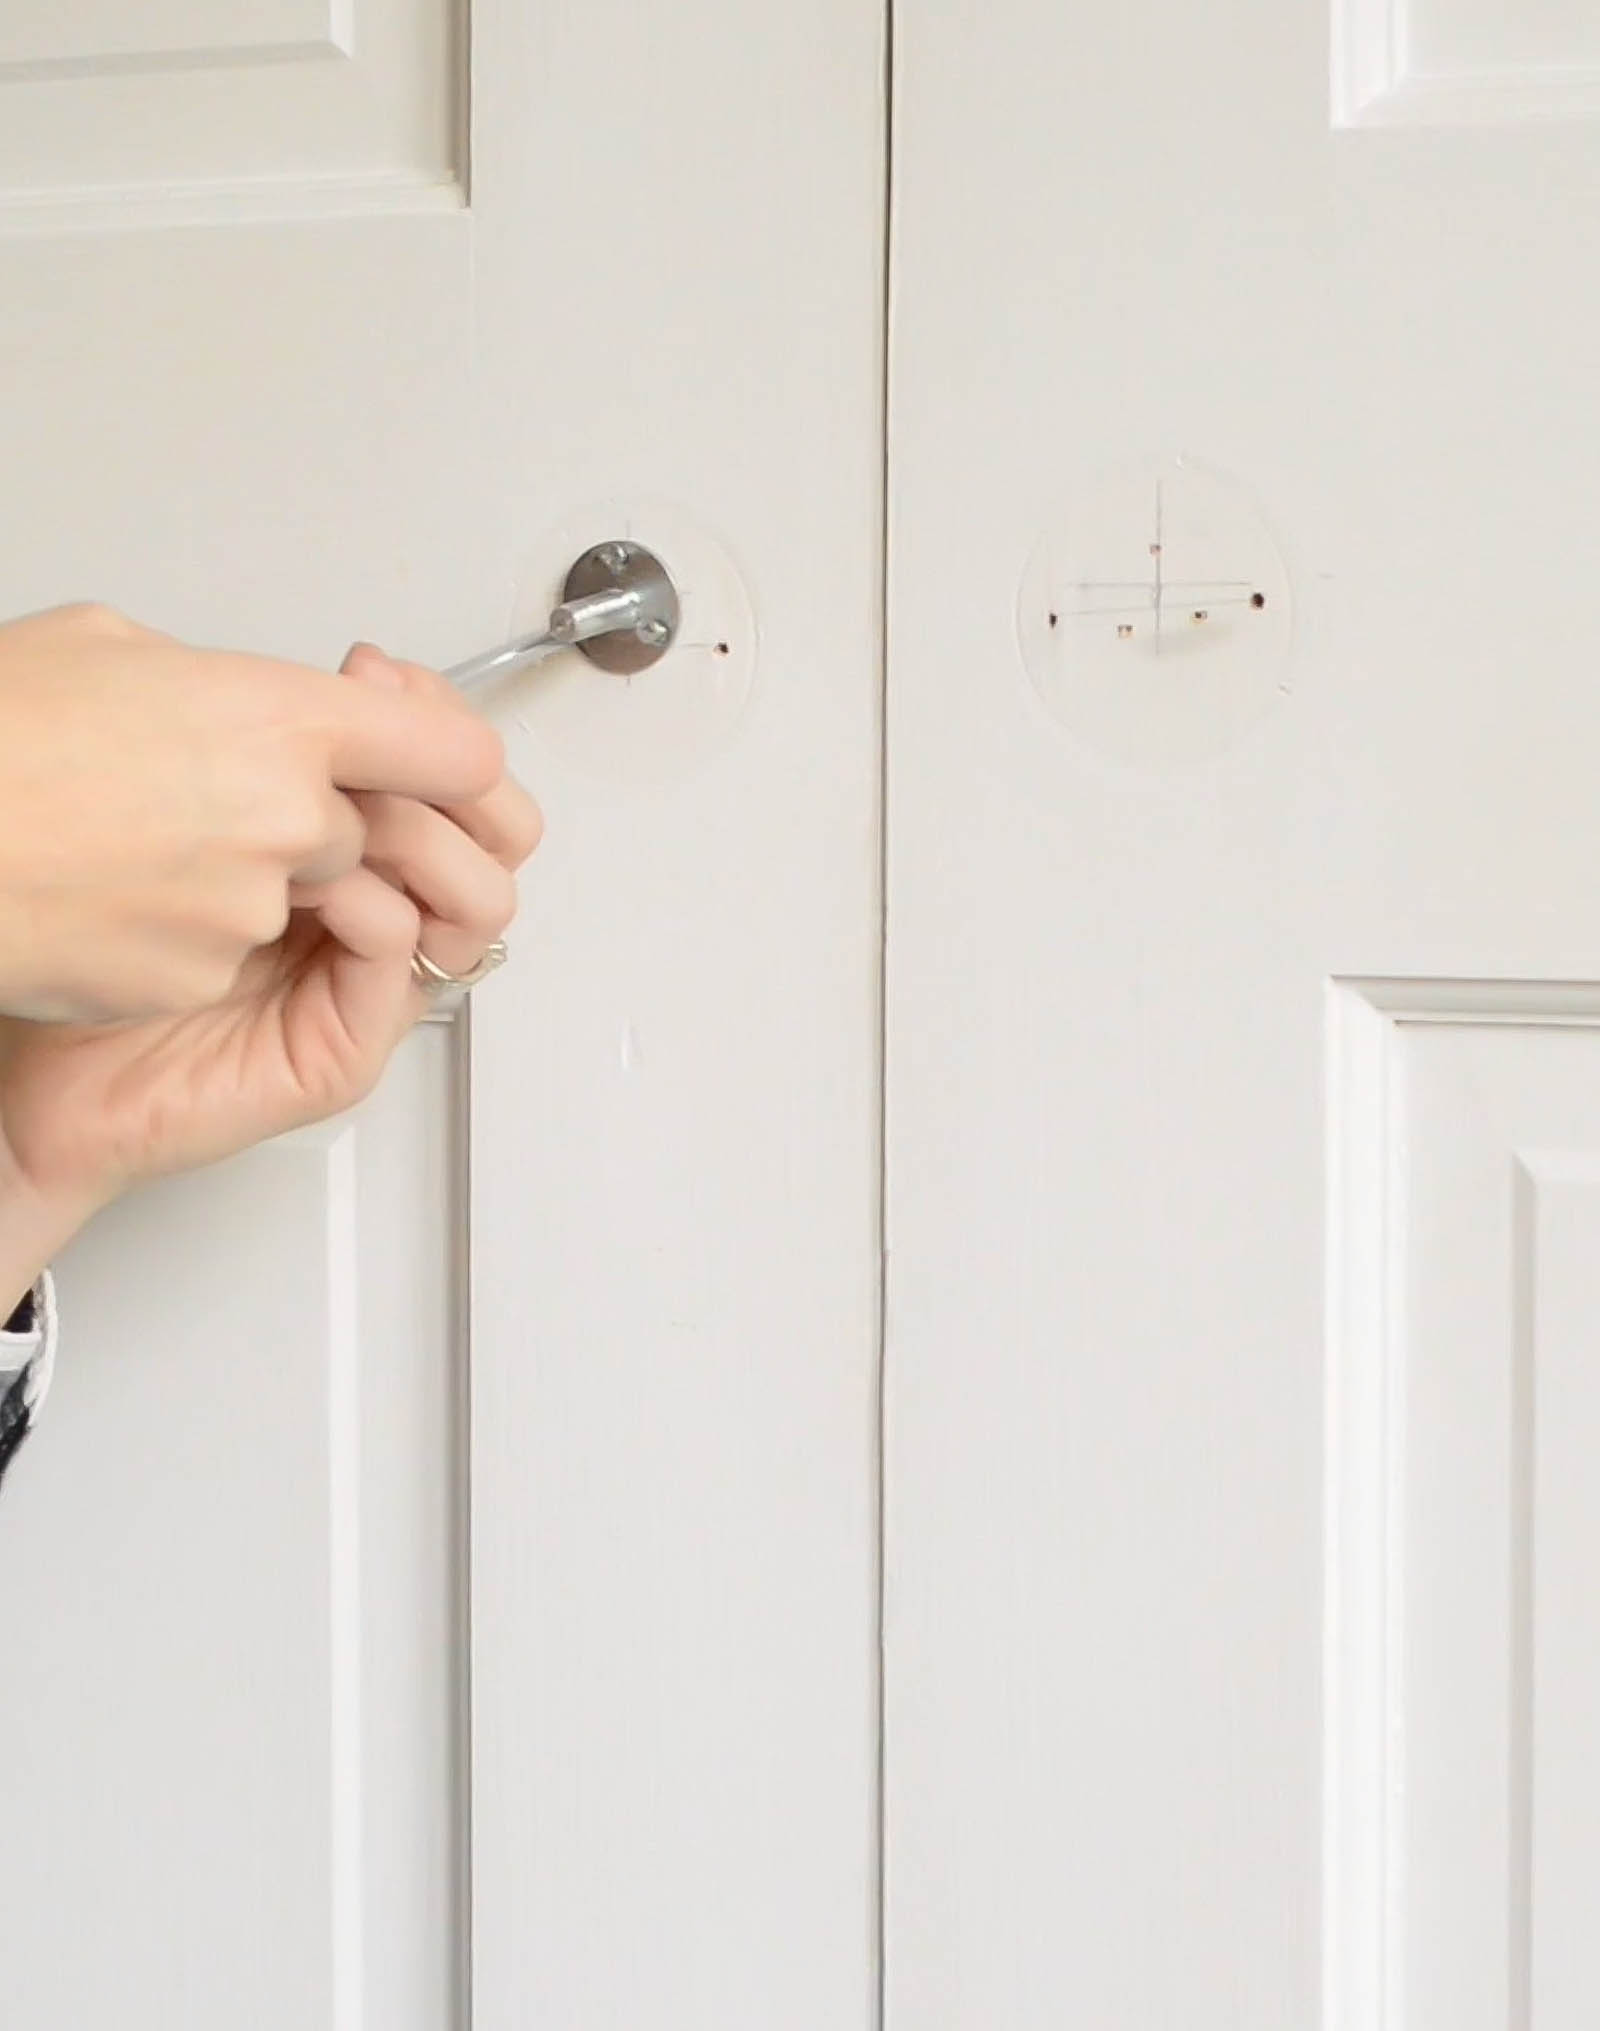 Screwing in a door knob